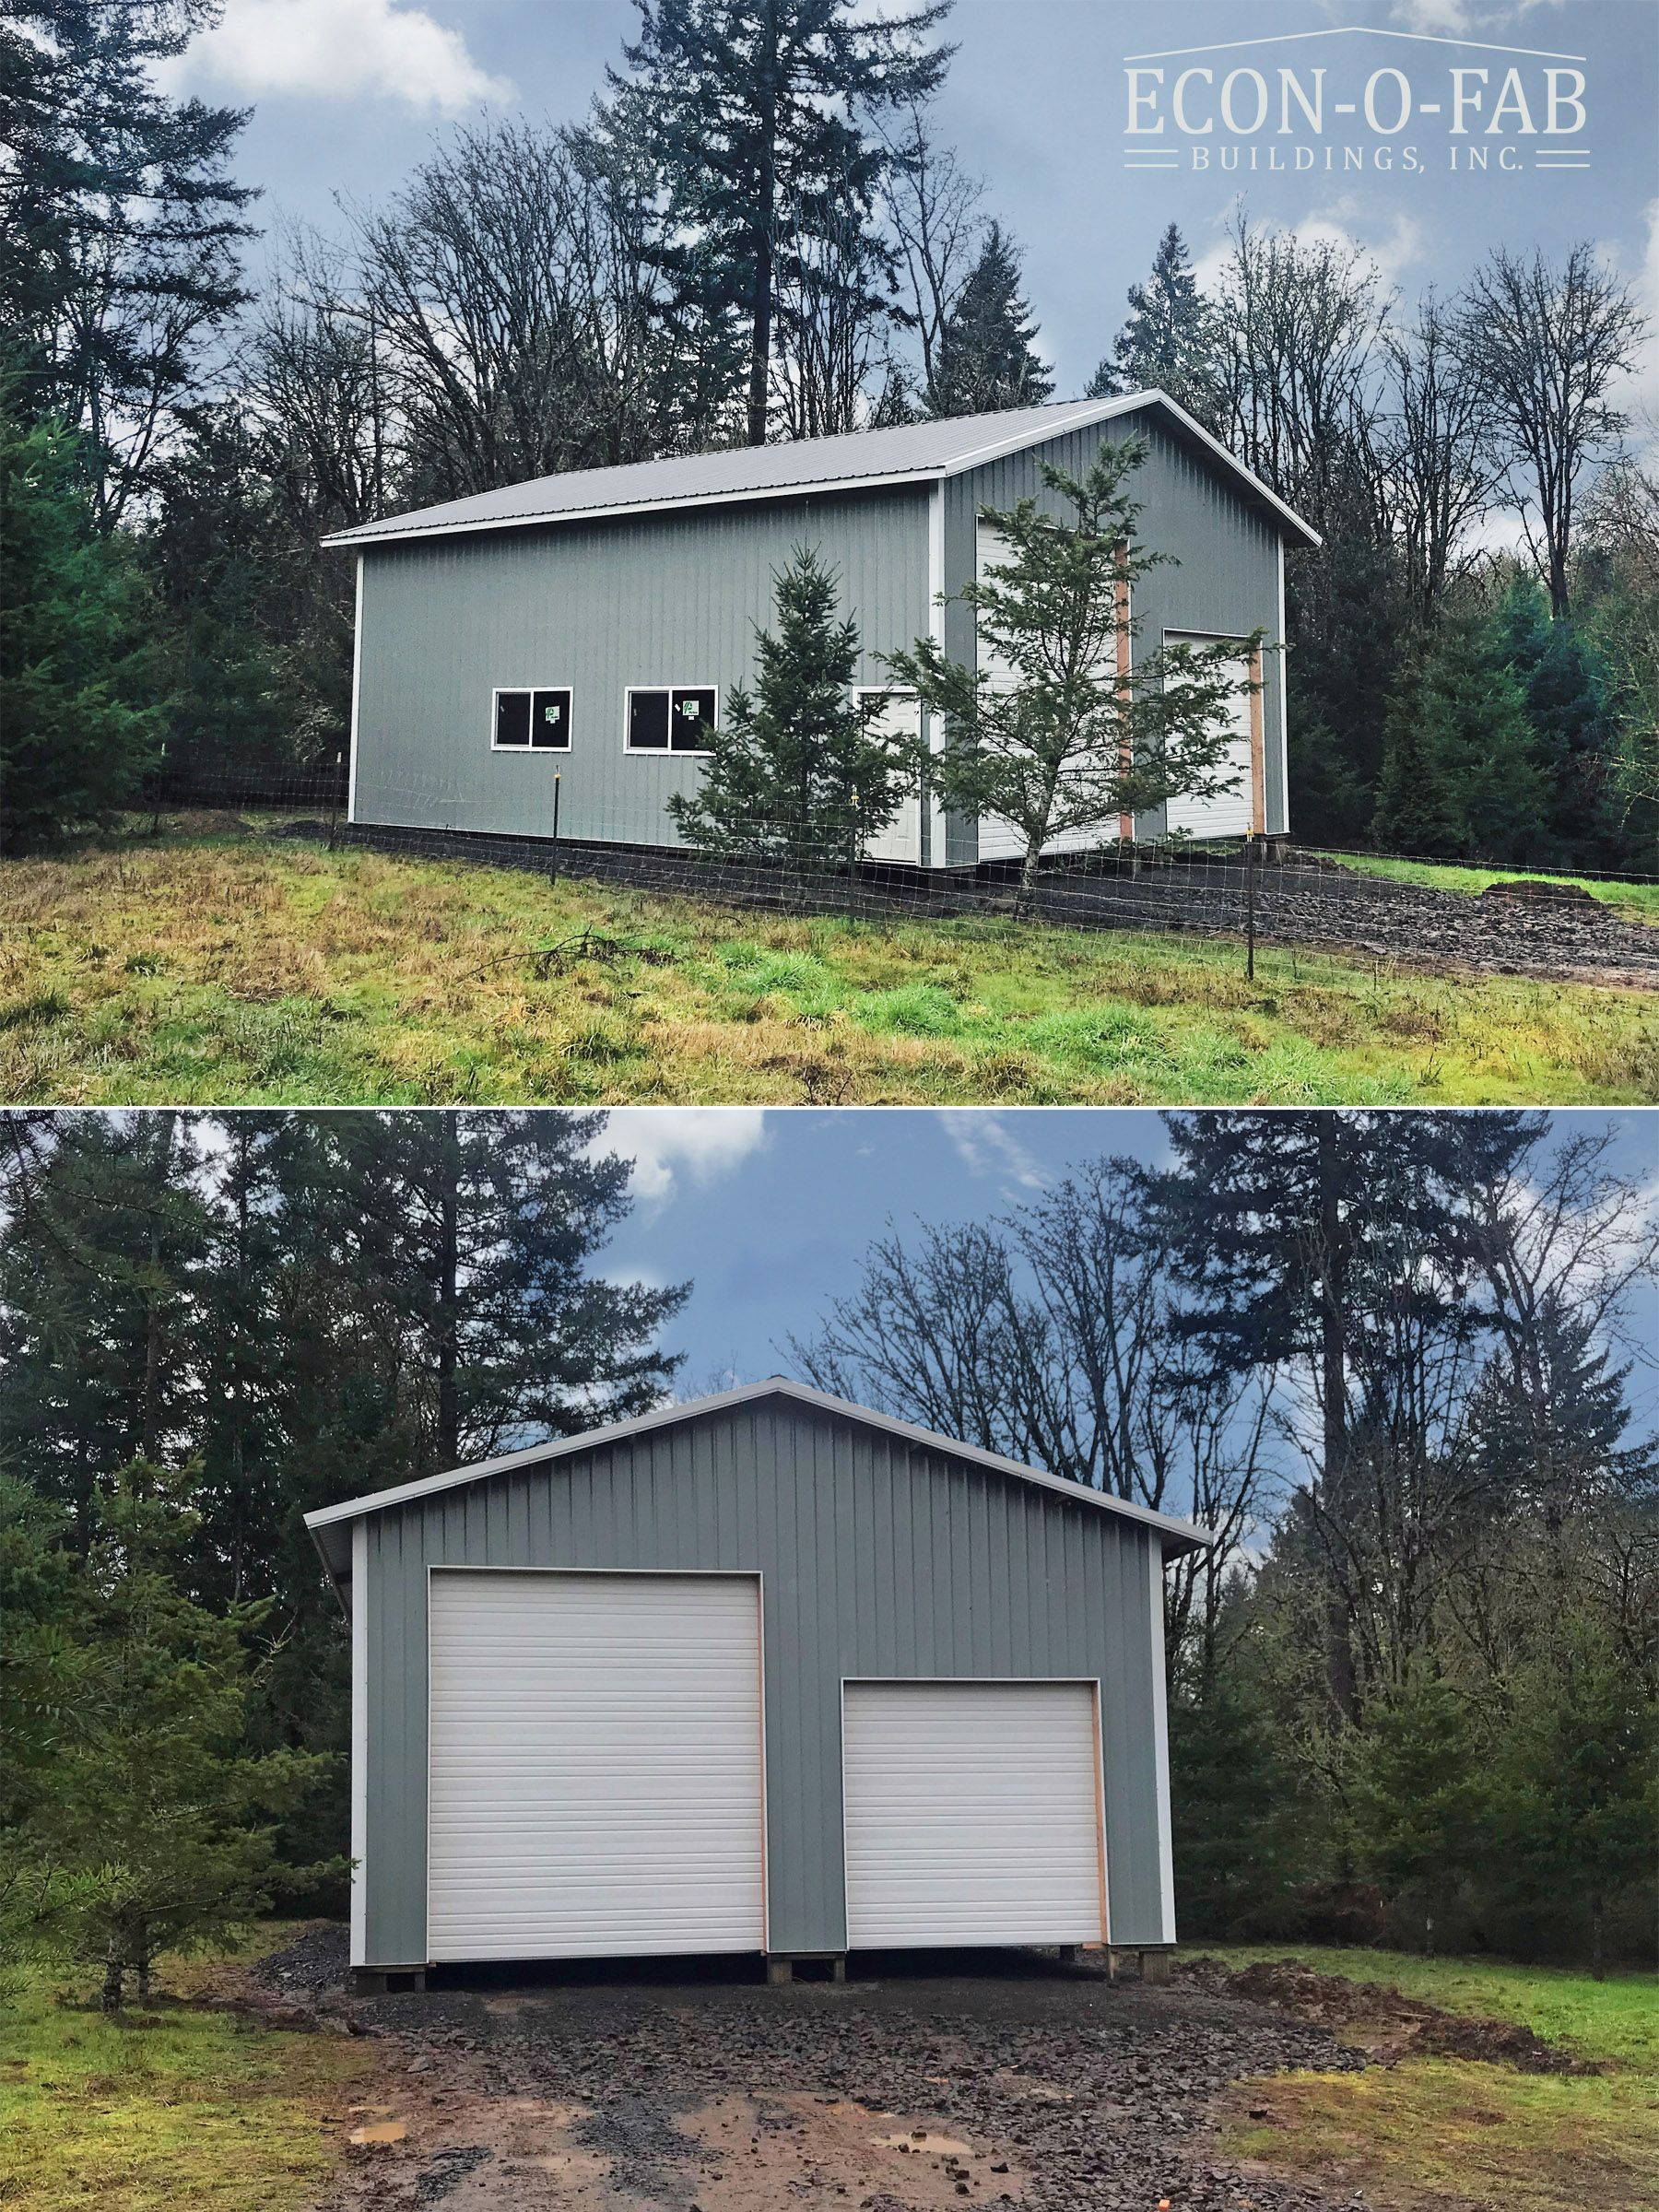 30 X 40 X 16 Pole Building In 2020 Pole Buildings Pole Barn Garage Metal Buildings